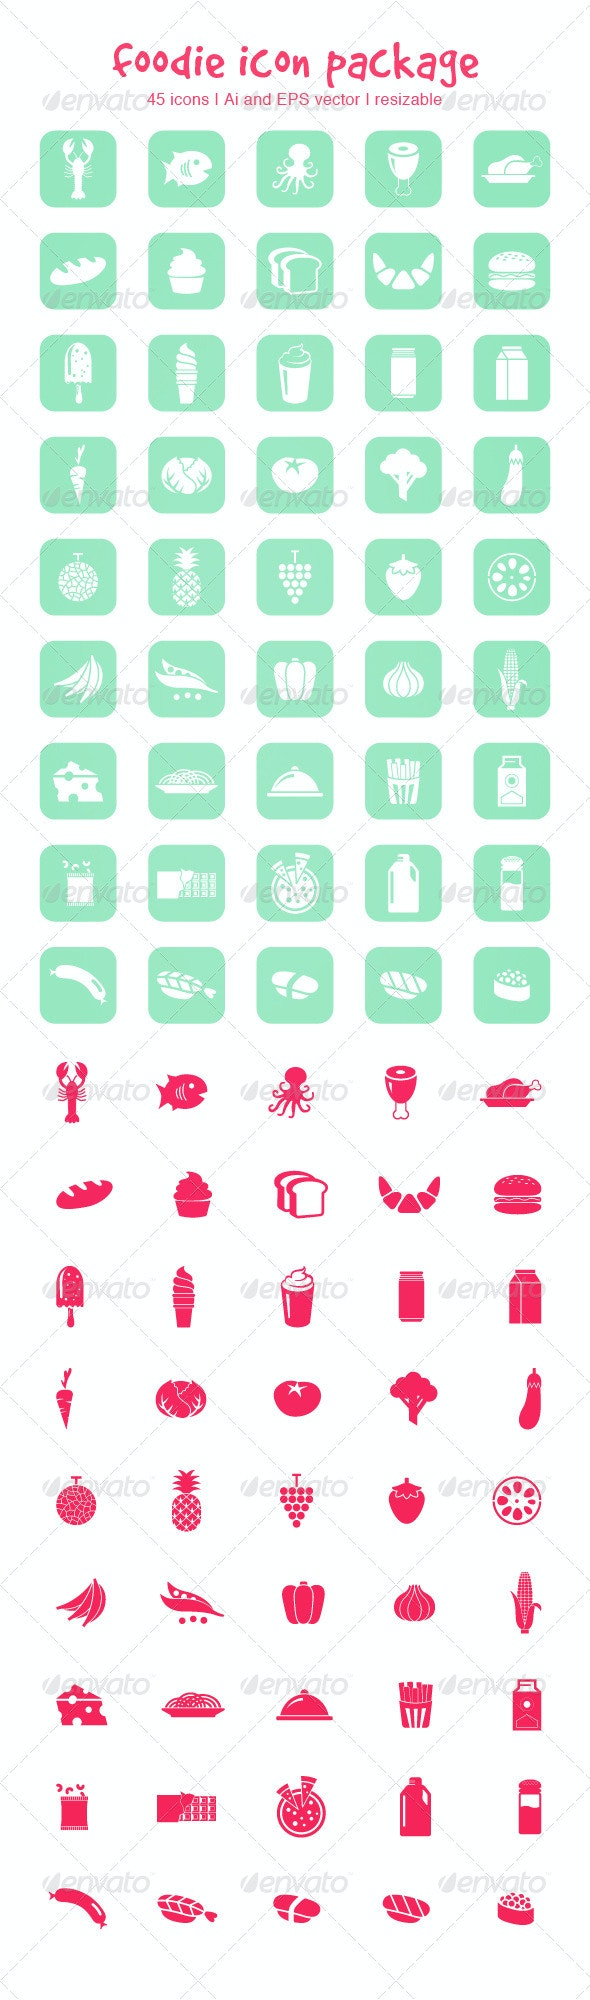 Foodie Icon Package - Icons